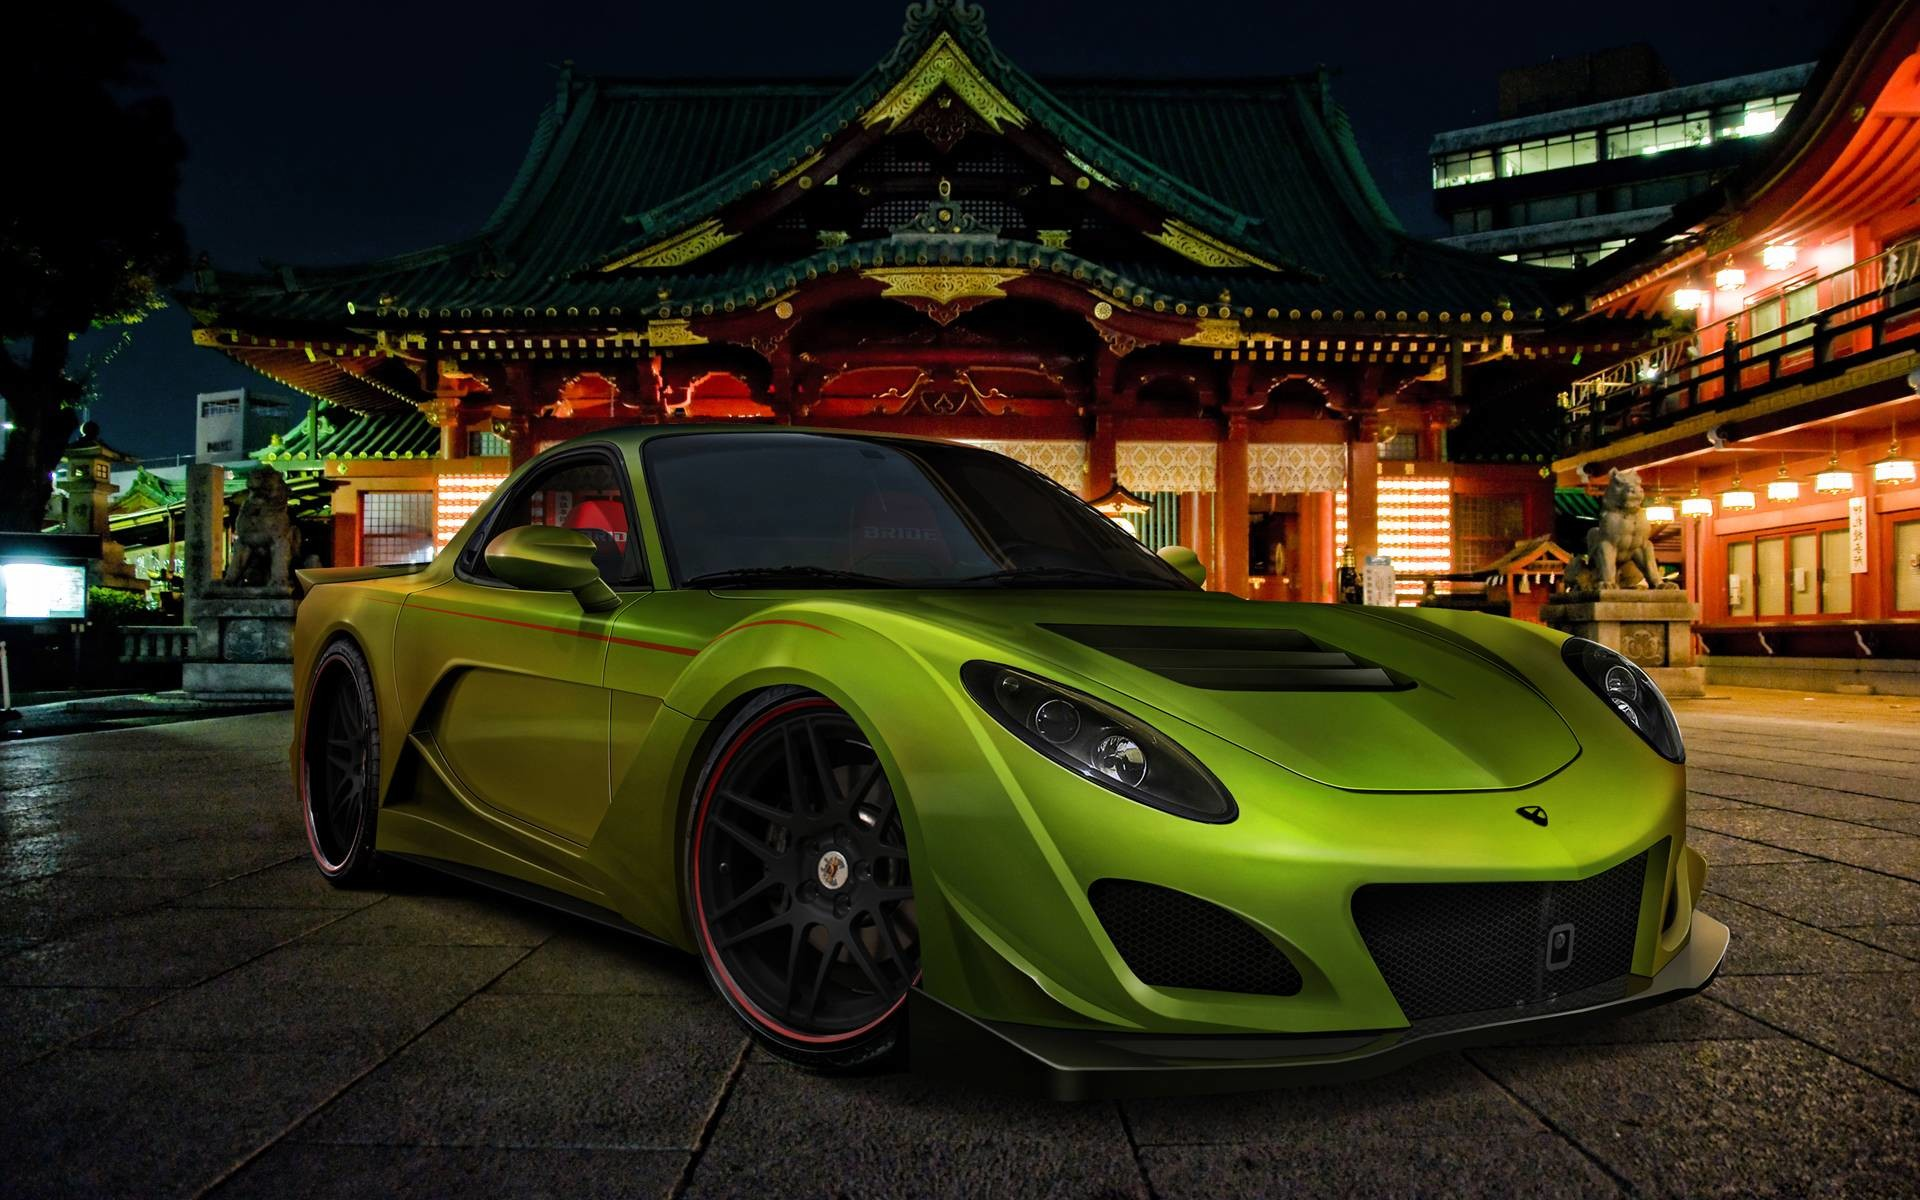 Cool Cars Wallpapers For Desktop Background 1 Hd Wallpapers Lzamgs